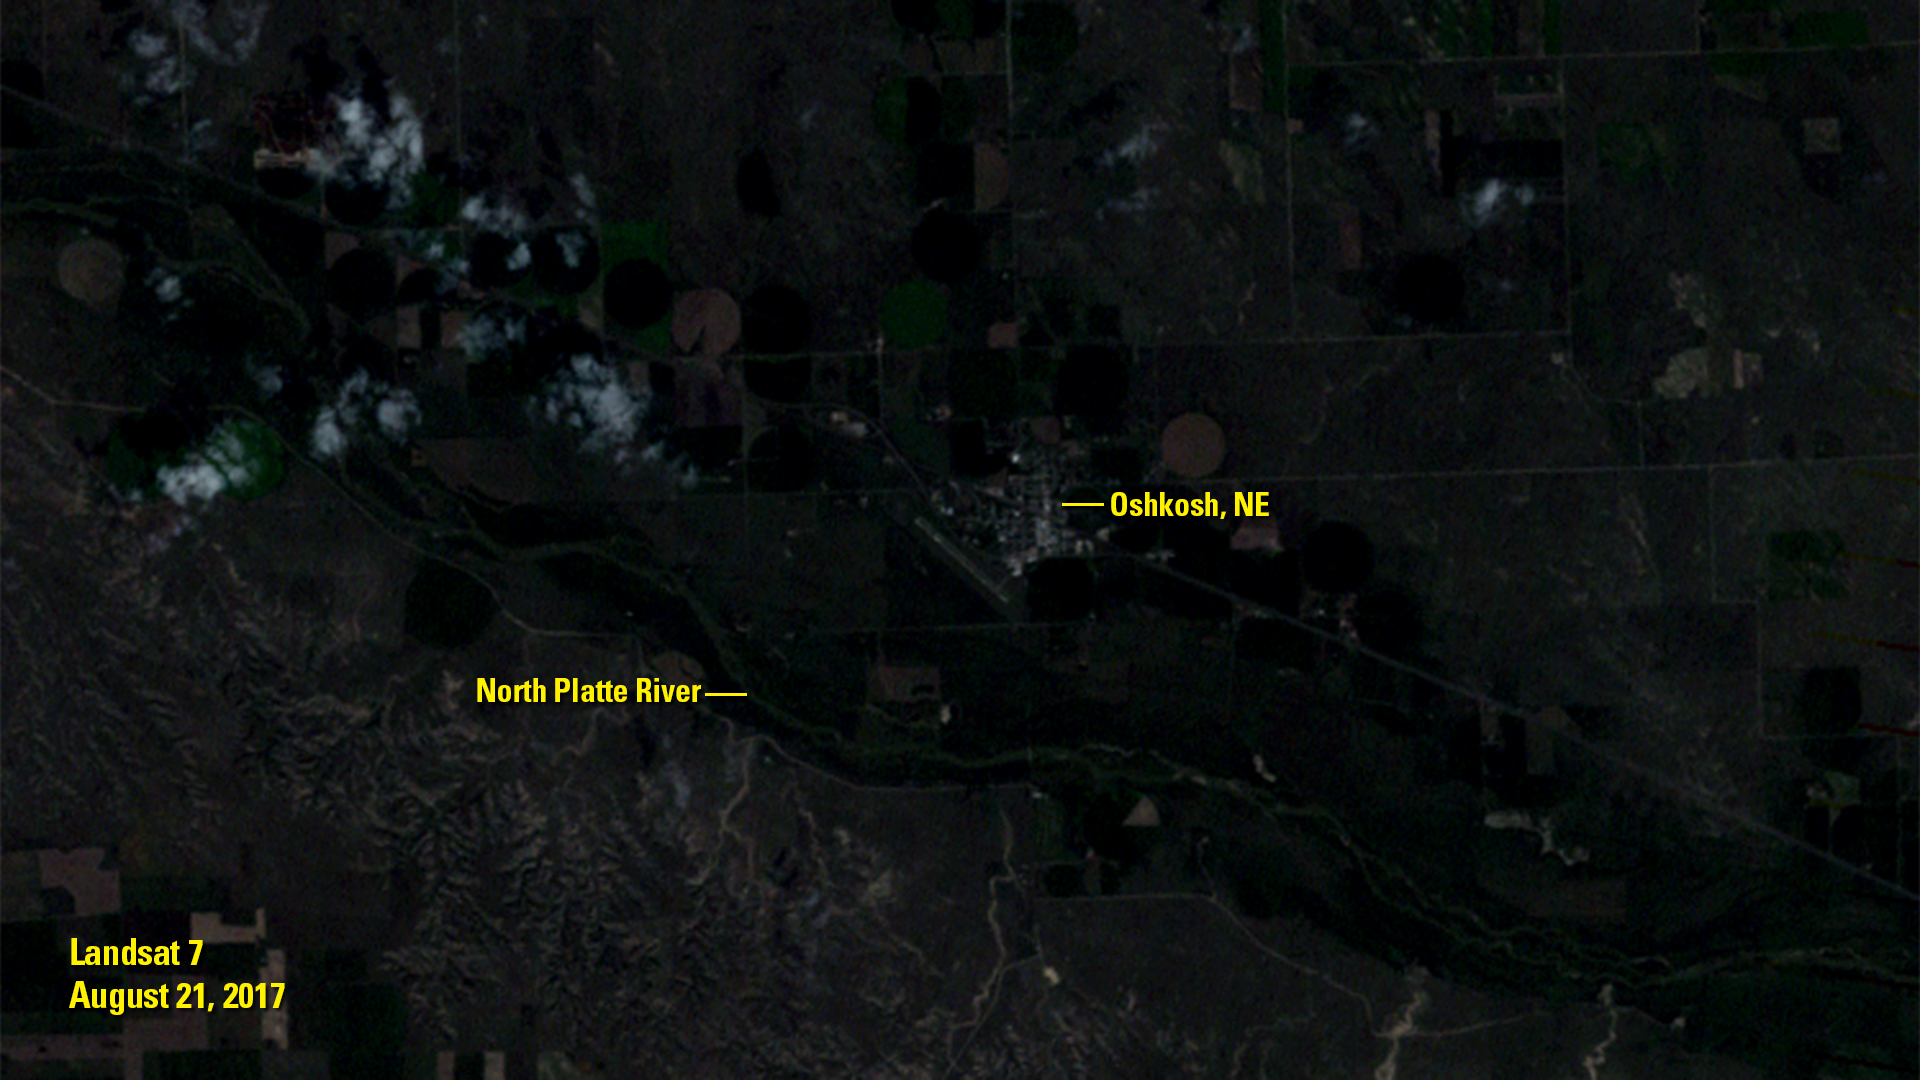 An image of Oshkosh, Nebraska from Aug. 18, 2016